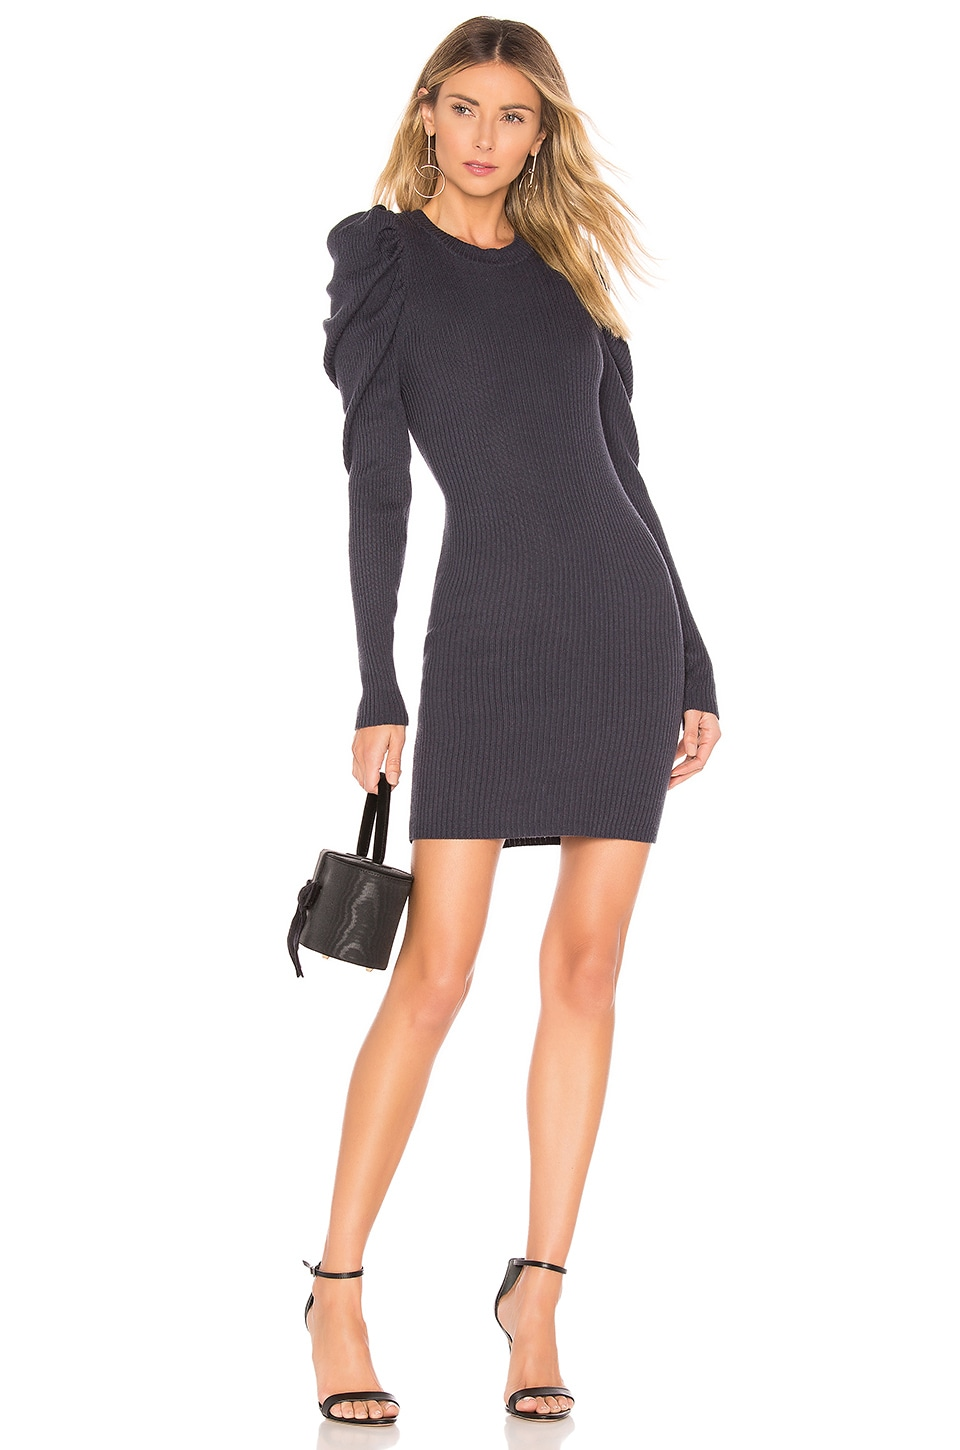 L'Academie Farrah Sweater Dress in Dark Blue